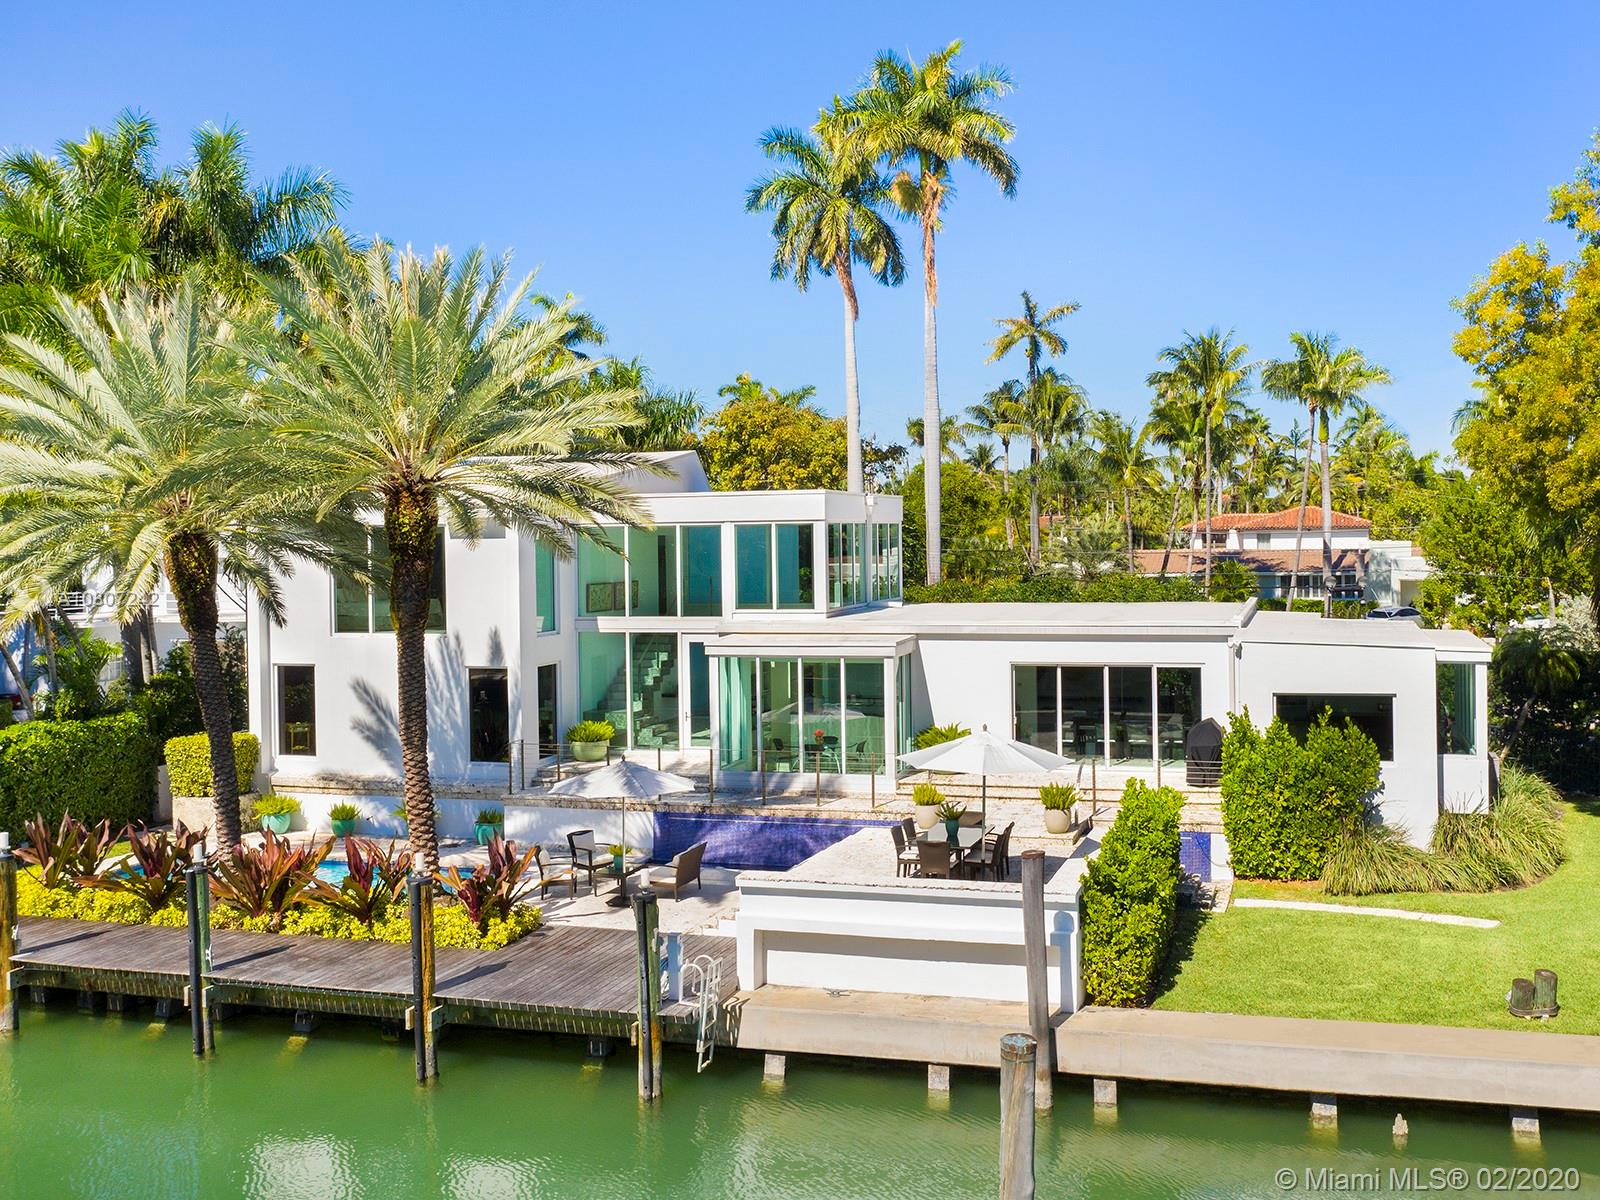 With spacious interiors and large surrounding greenery, this stunning Miami Beach waterfront home includes 5 Bed / 4.5 Bath situated on a large 14,875 ft lot with 177 ft of waterfront. Constructed with contemporary architectural design, this 4,049 sq. ft. home features an expansive open living area with natural light everywhere, silver travertine floors, gourmet eat-in kitchen, customized stainless-steel staircase, and crema marfil marble throughout second story floors. Other amenities include floor-to-ceiling windows, a keystone terrace/patio for entertaining, an expansive backyard, a sparkling pool, and a private dock! Located on coveted gated Sunset Island 3, this exclusive home is within easy walking distance from the stylish Sunset Harbour neighborhood.